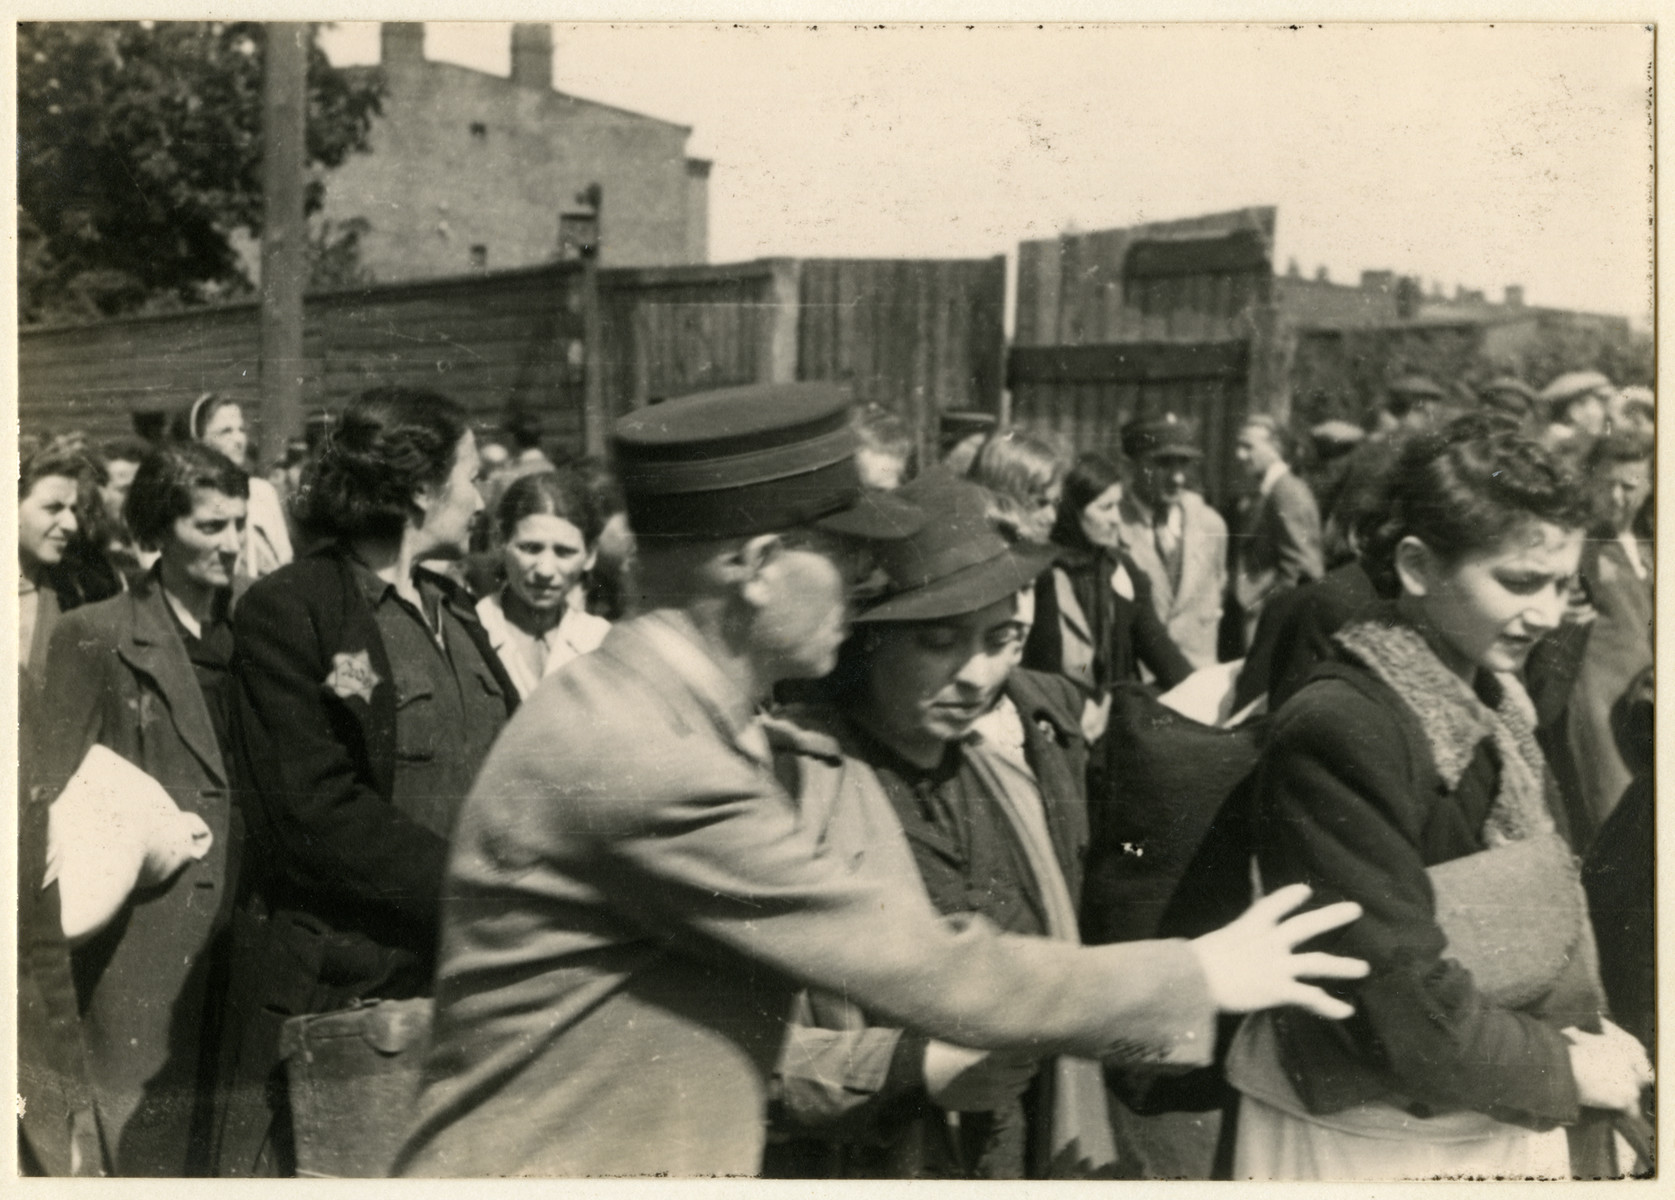 Jewish police escort a group of women who have been rounded up for deportation in the Lodz ghetto.